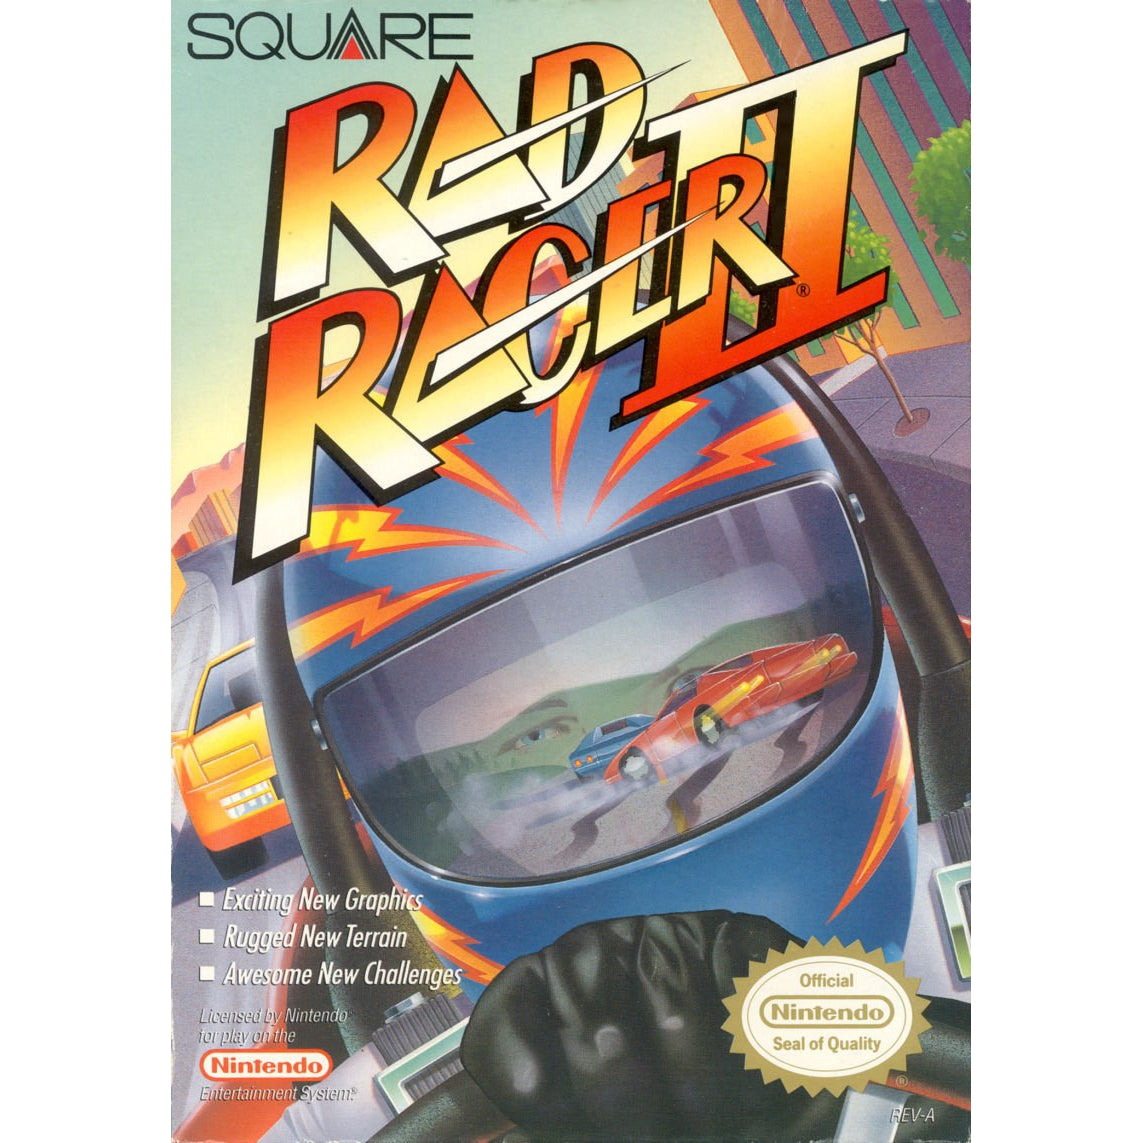 Rad Racer II - Authentic NES Game Cartridge - YourGamingShop.com - Buy, Sell, Trade Video Games Online. 120 Day Warranty. Satisfaction Guaranteed.